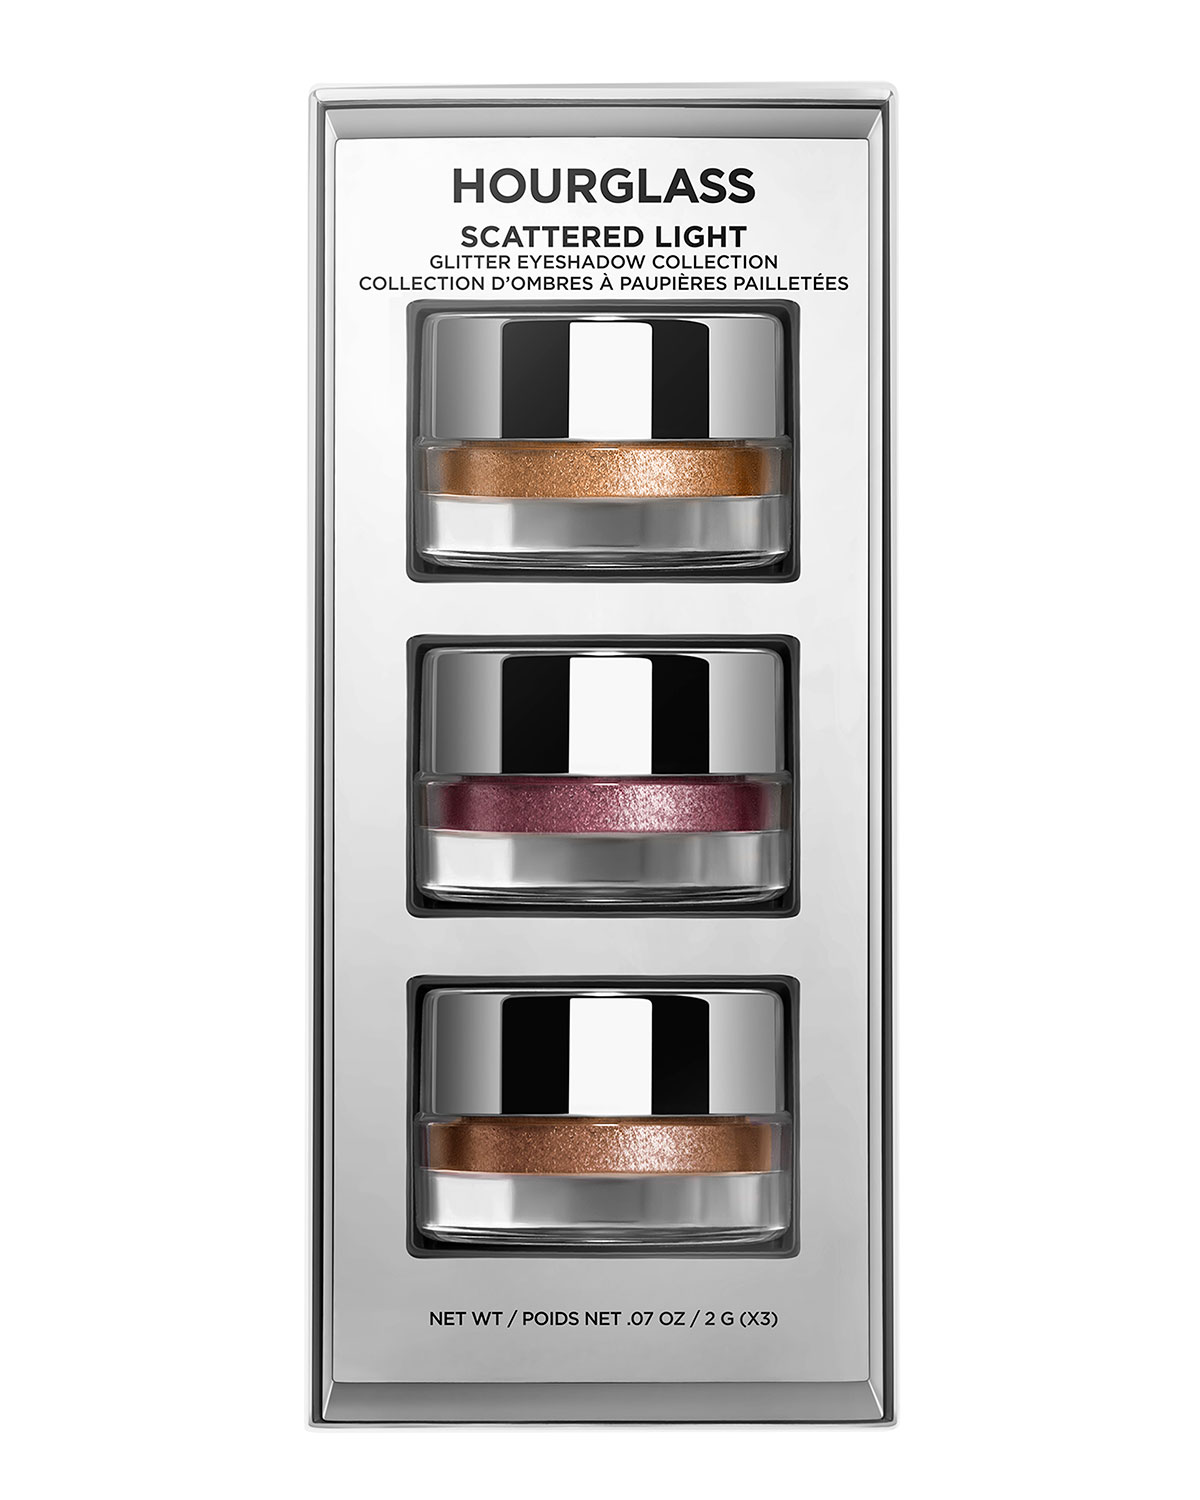 Hourglass Cosmetics SCATTERED LIGHT GLITTER EYESHADOW COLLECTION